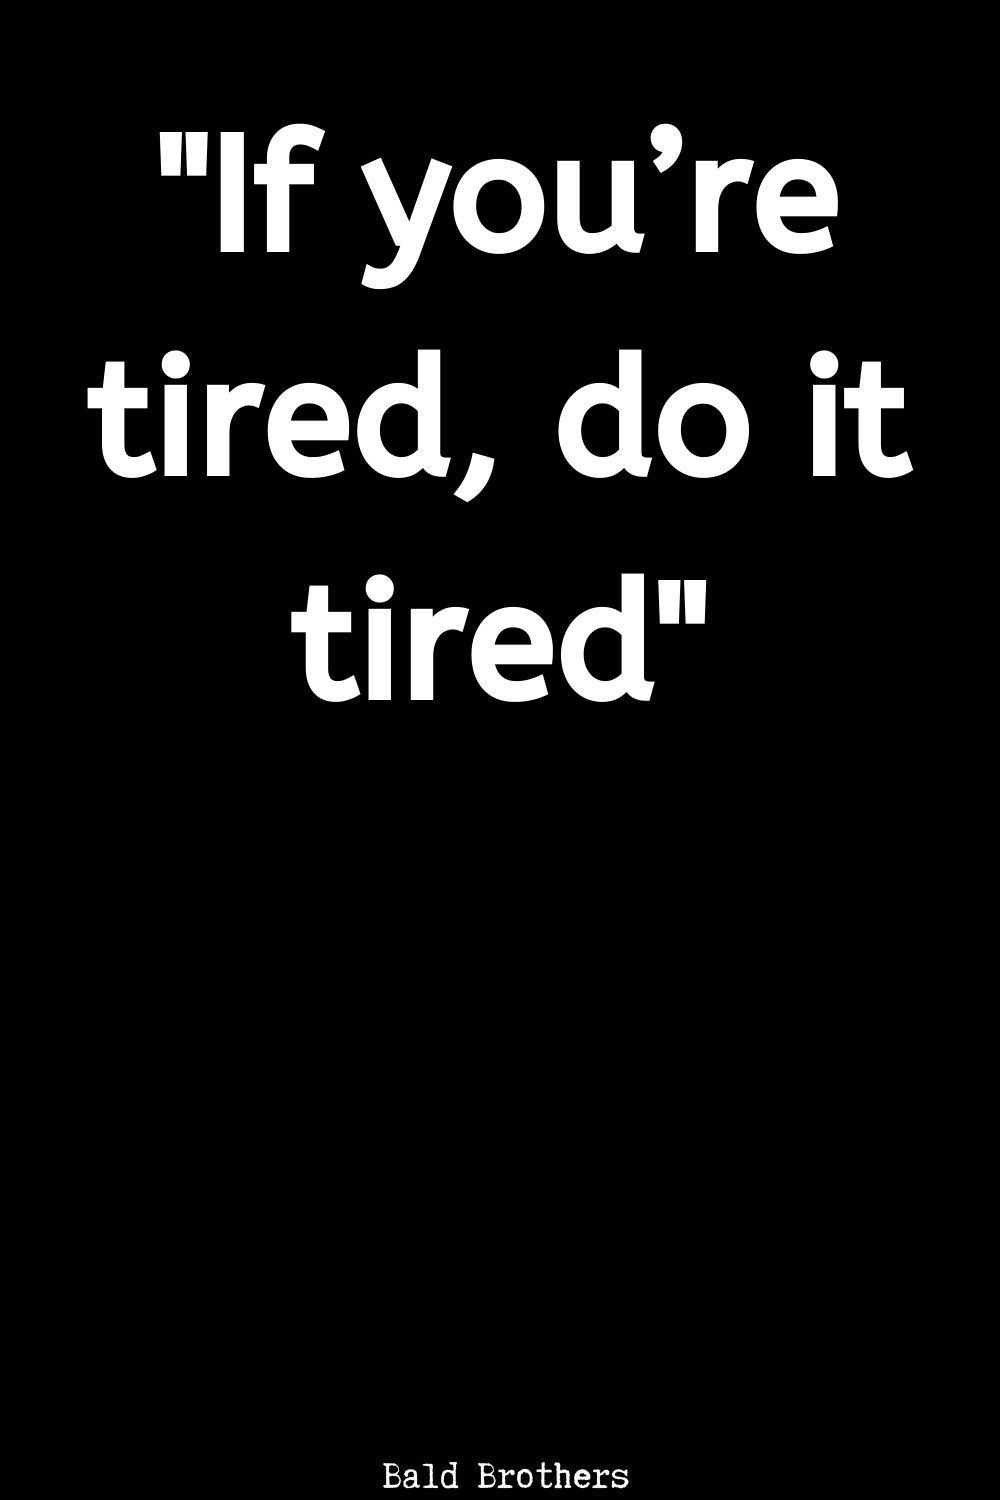 30 Workout quotes to keep you motivated! #workoutquotes #fitnessquotes #workoutmotivation